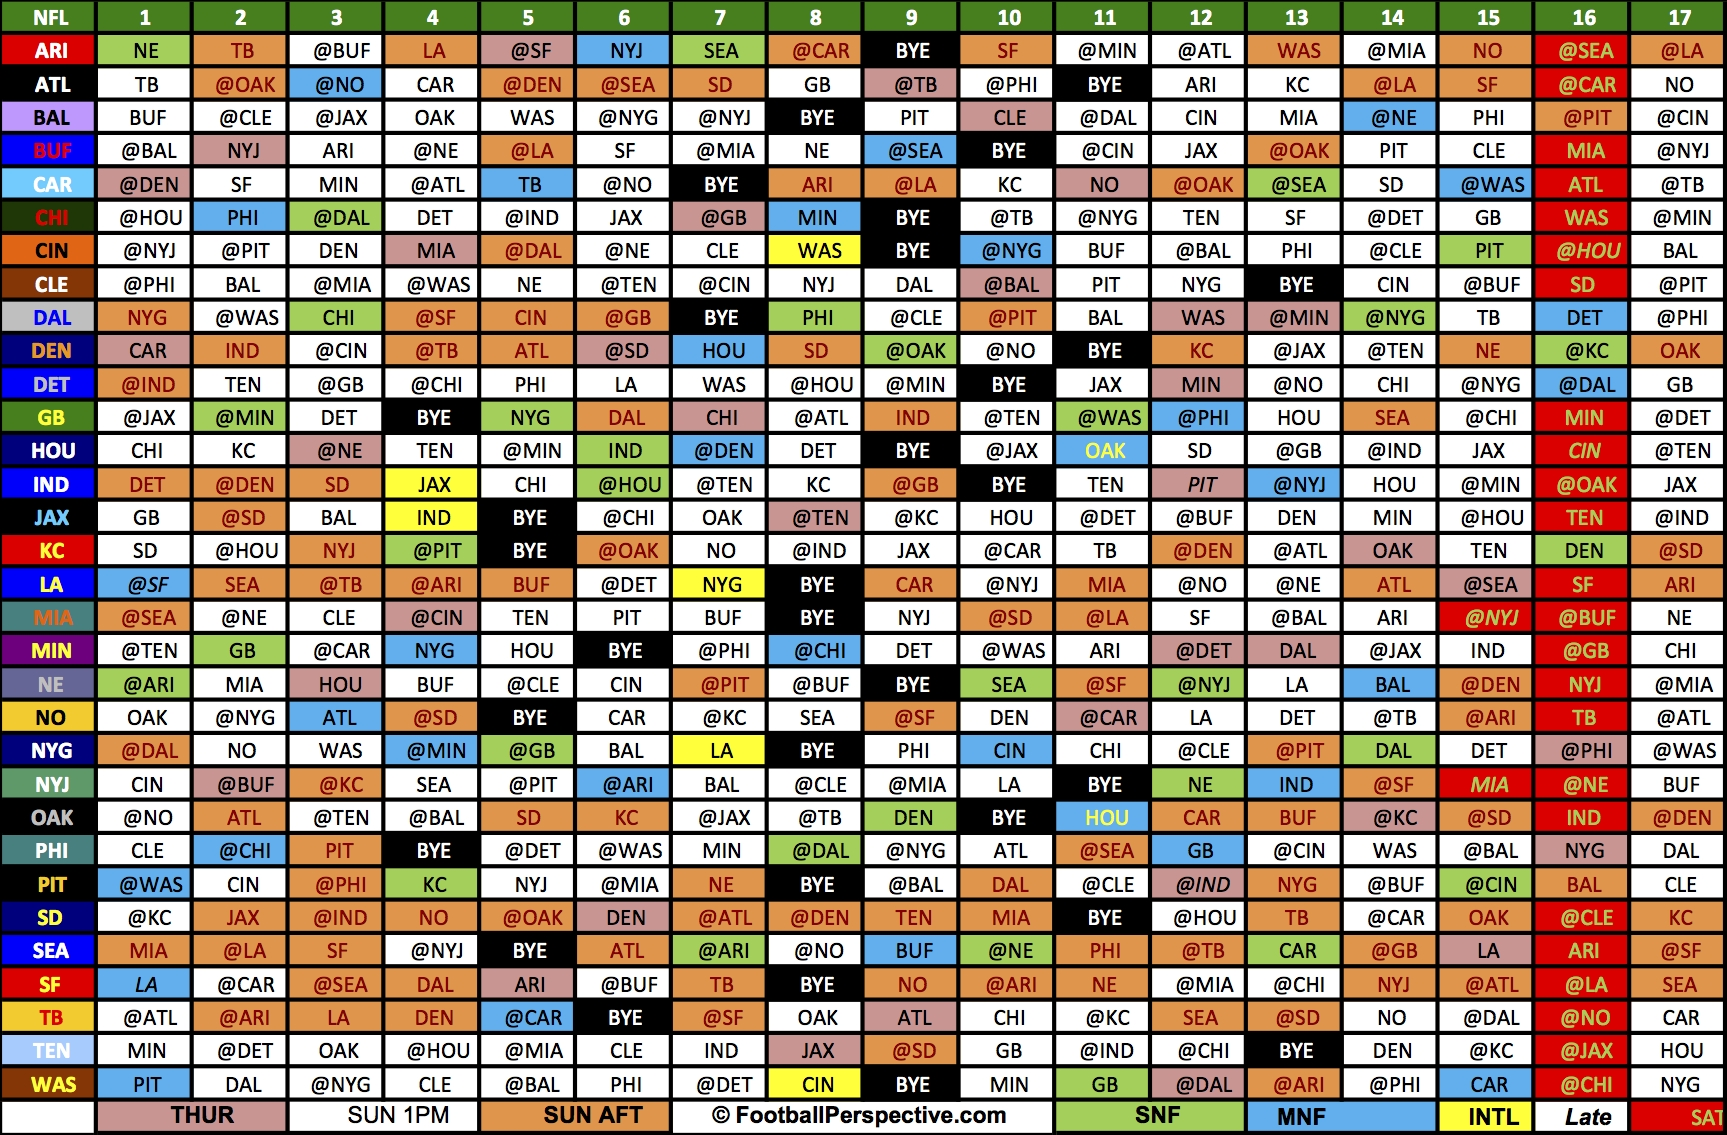 The 2016 Nfl Schedule-1 Page Printable Nfl Schedule